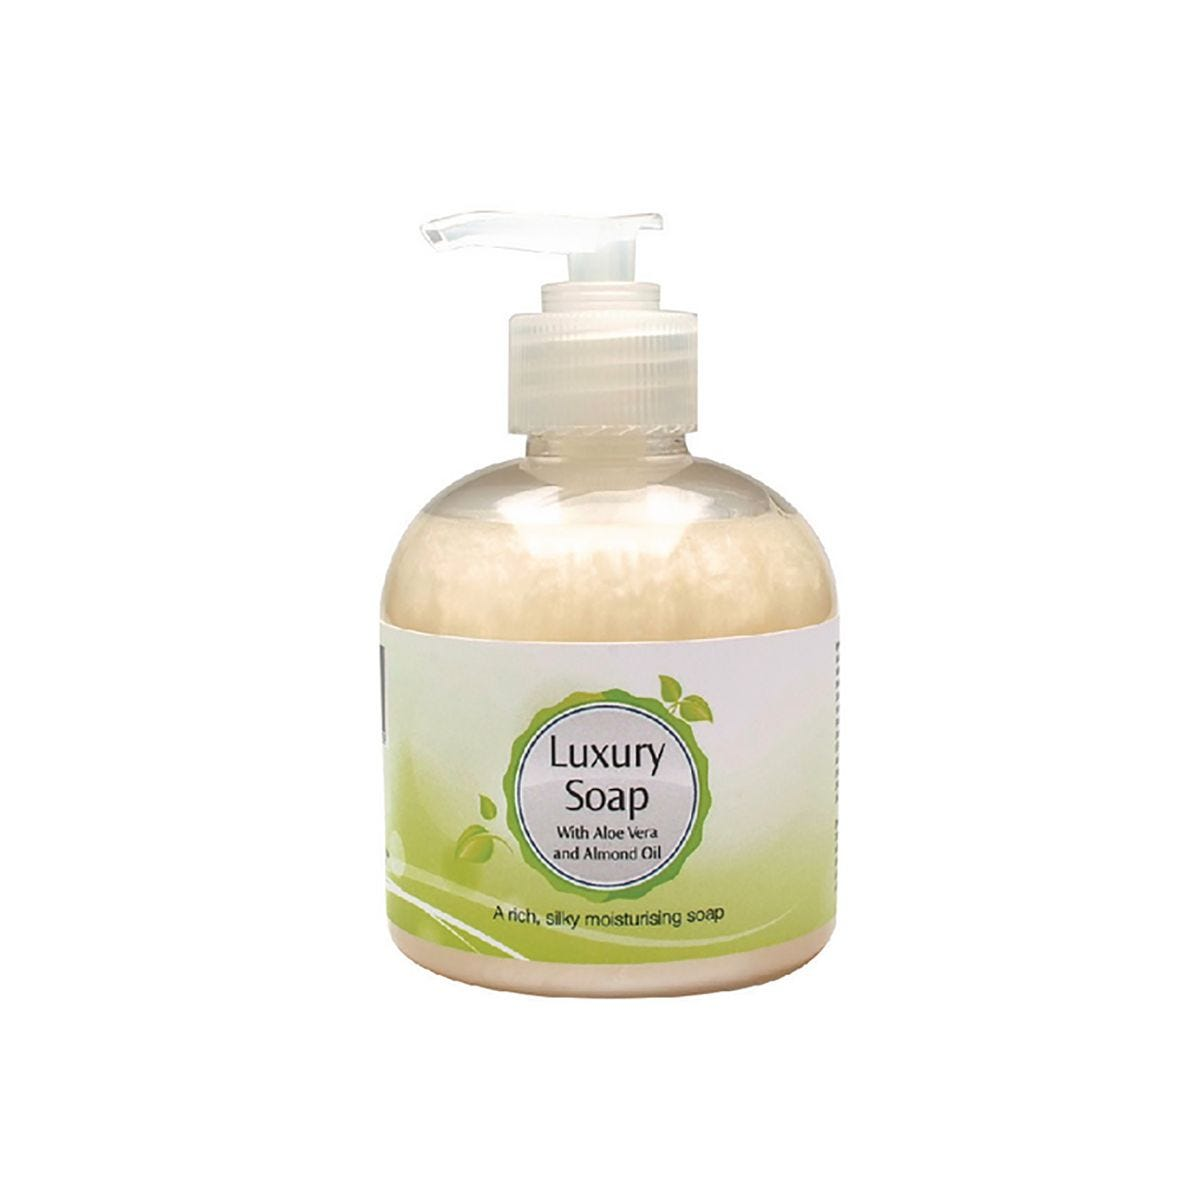 Image of 2Work Luxury Pearl Hand Soap 300ml Pack of 6